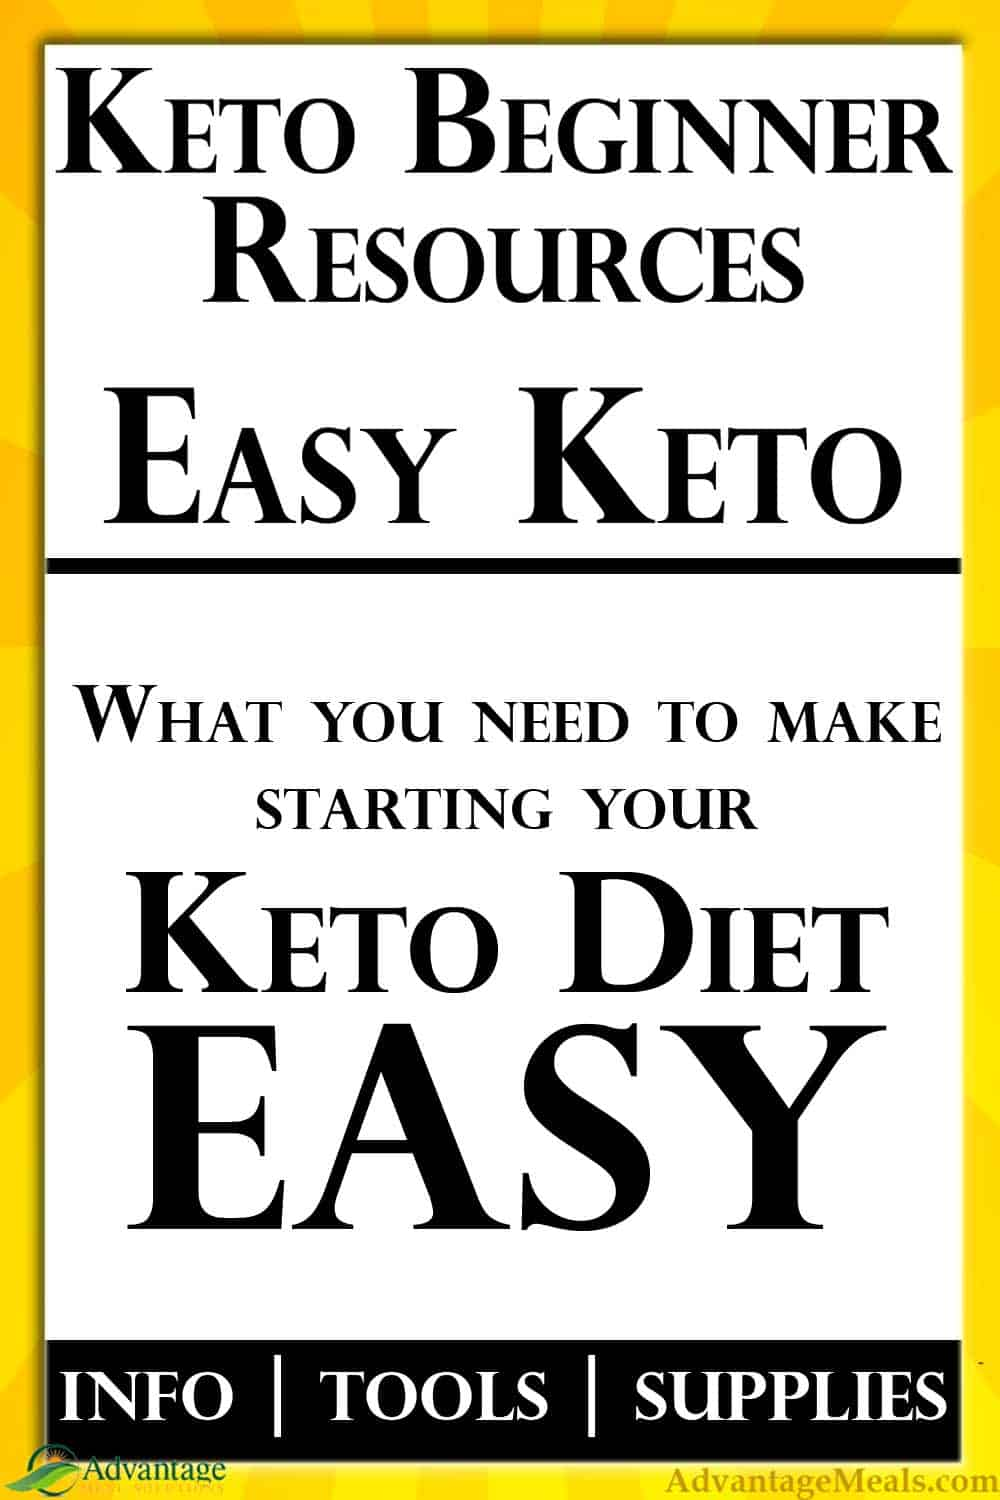 Starting Keto doesn\'t have to be hard or confusing.  After 10 Years of coaching keto, I made this list of essentials that you need when starting your keto way of eating.  Information | Recipes | Supplies | Essentials.  Keep it simple and get your keto on! ~ Angela of @AdvantageMeals #KetoBeginner #StartKeto